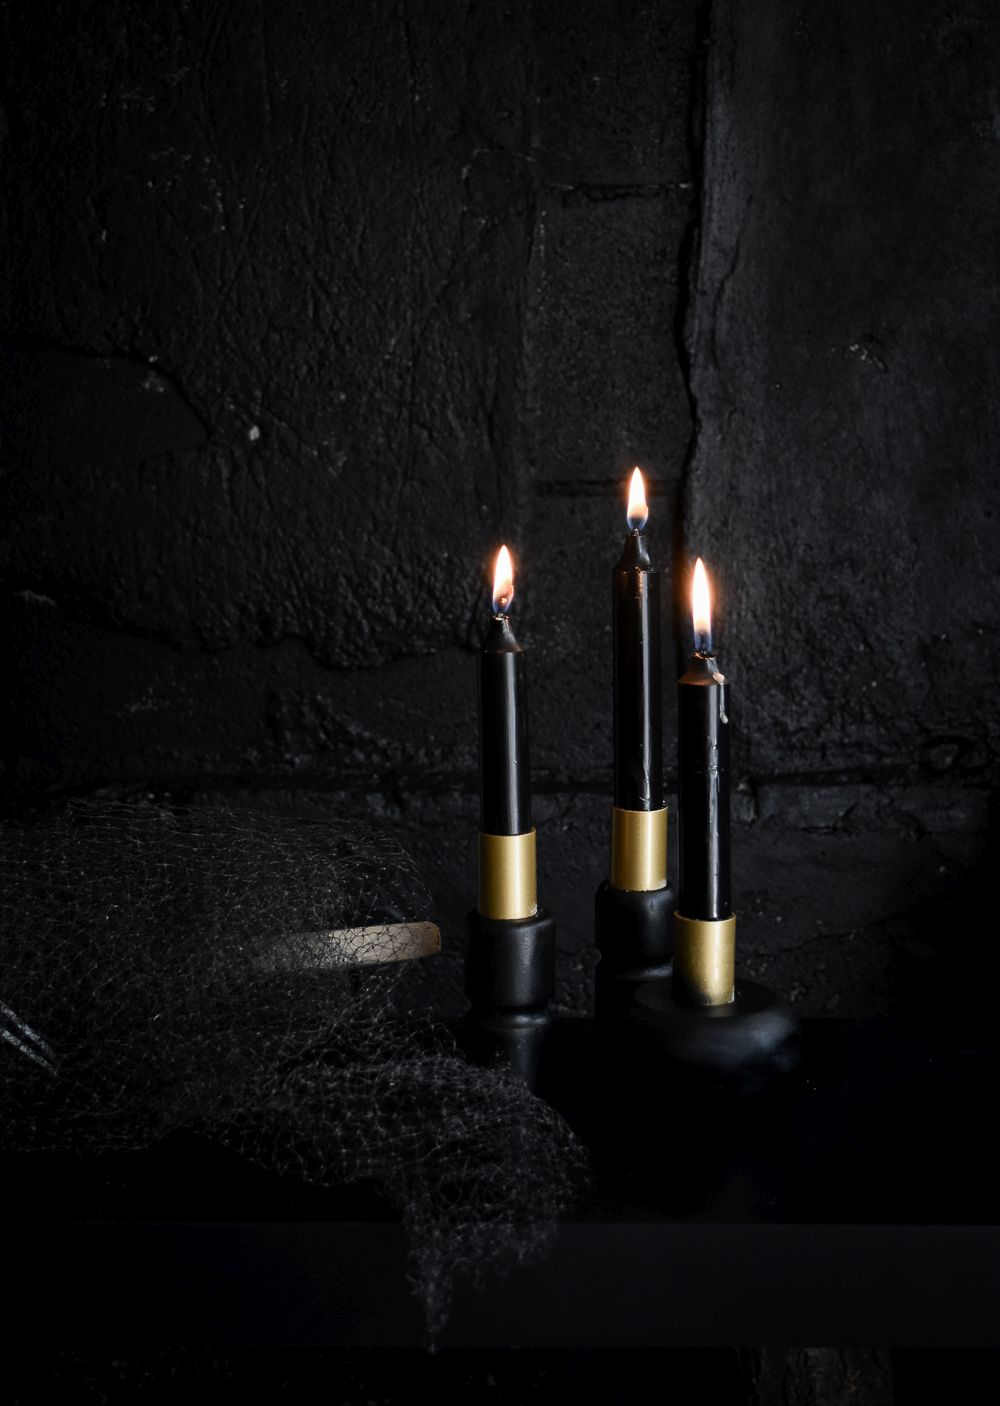 1571127052 575 diy halloween candle projects with spooky designs - DIY Halloween Candle Projects With Spooky Designs